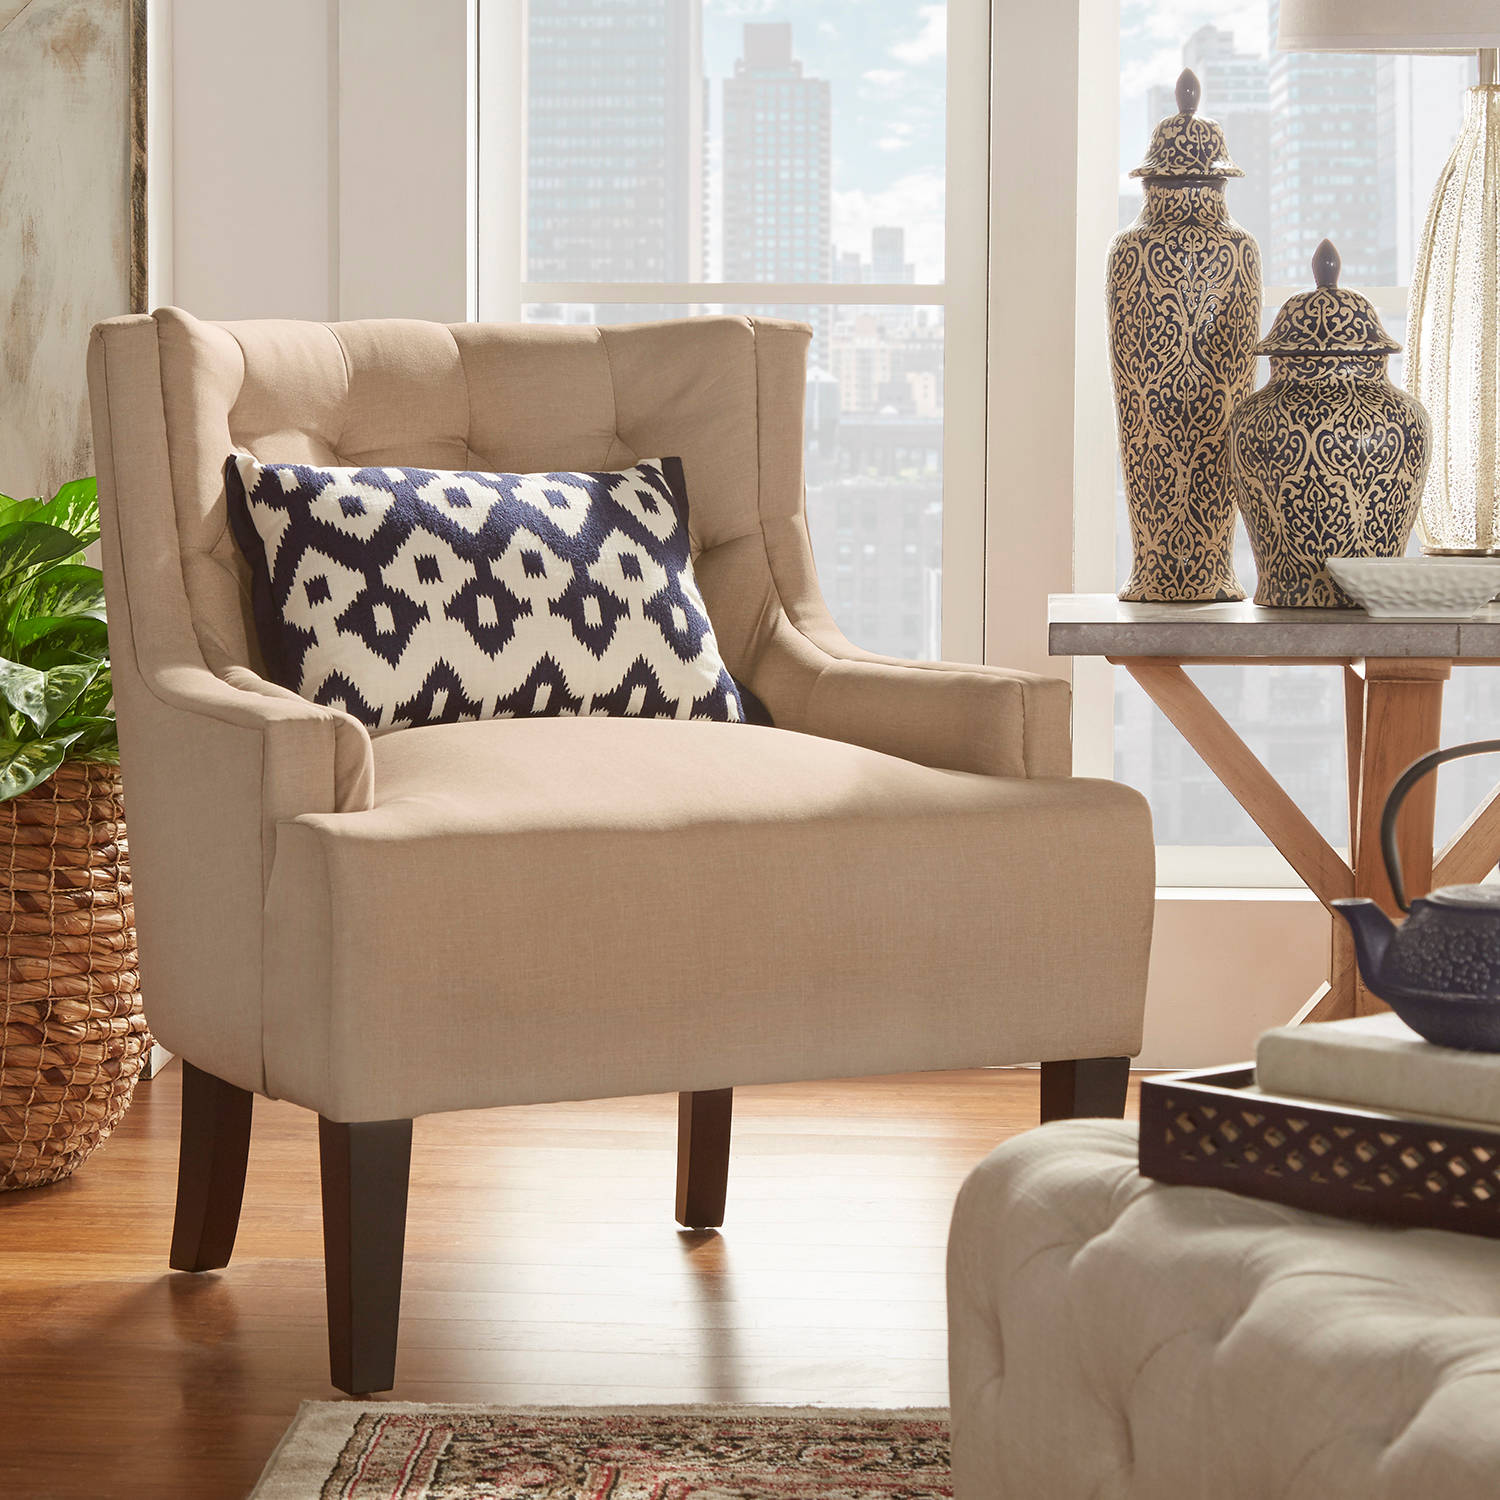 Weston Home St. Lucia Living Room Linen Tufted Accent Chair, Multiple Colors